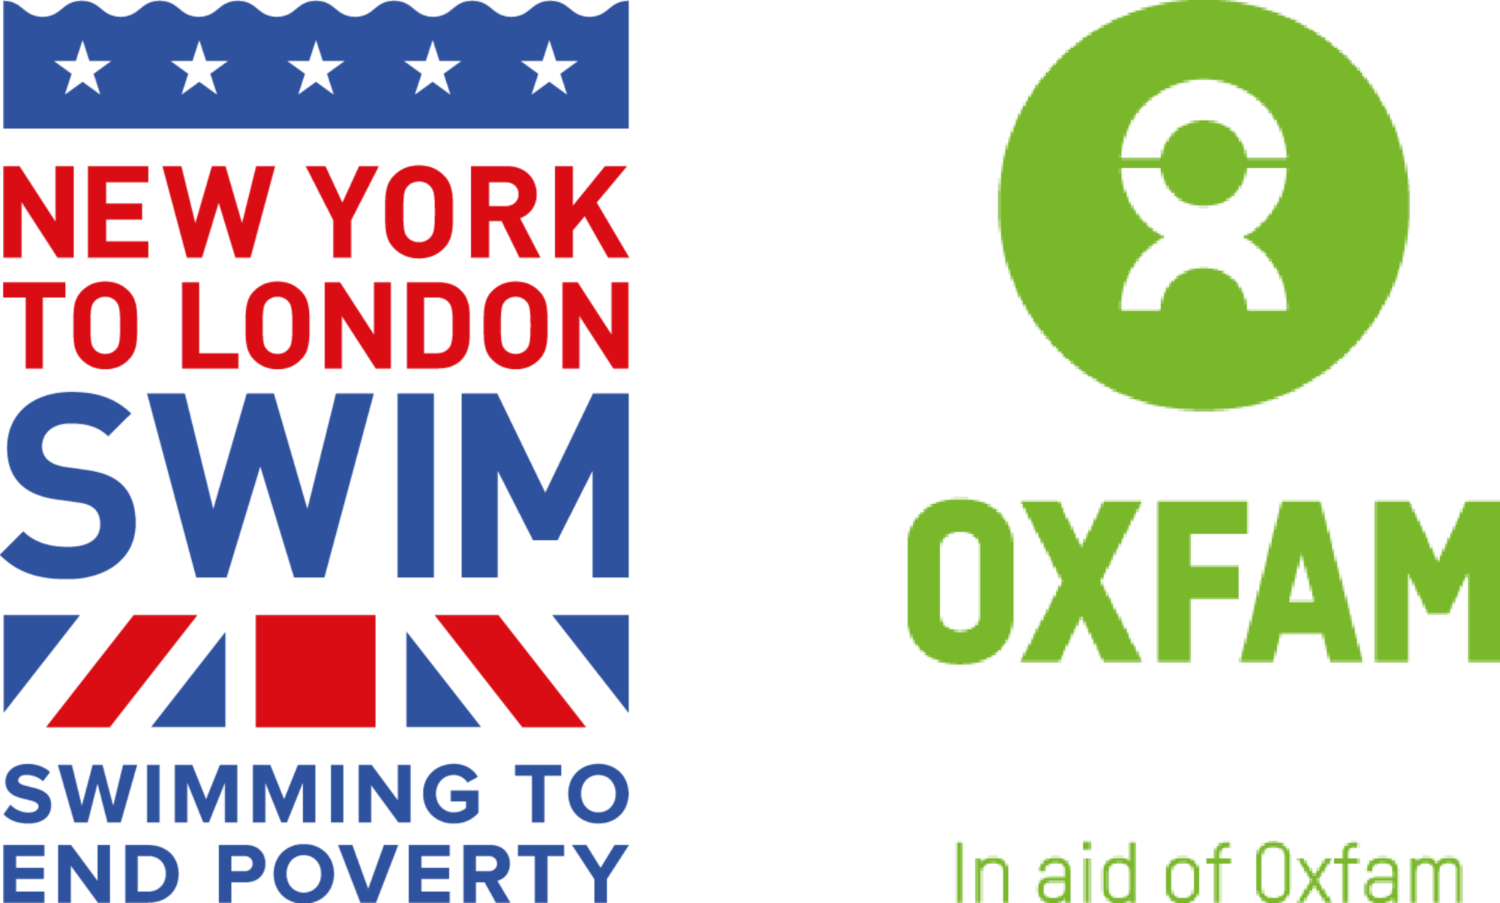 New York to London Swim in Aid of Oxfam